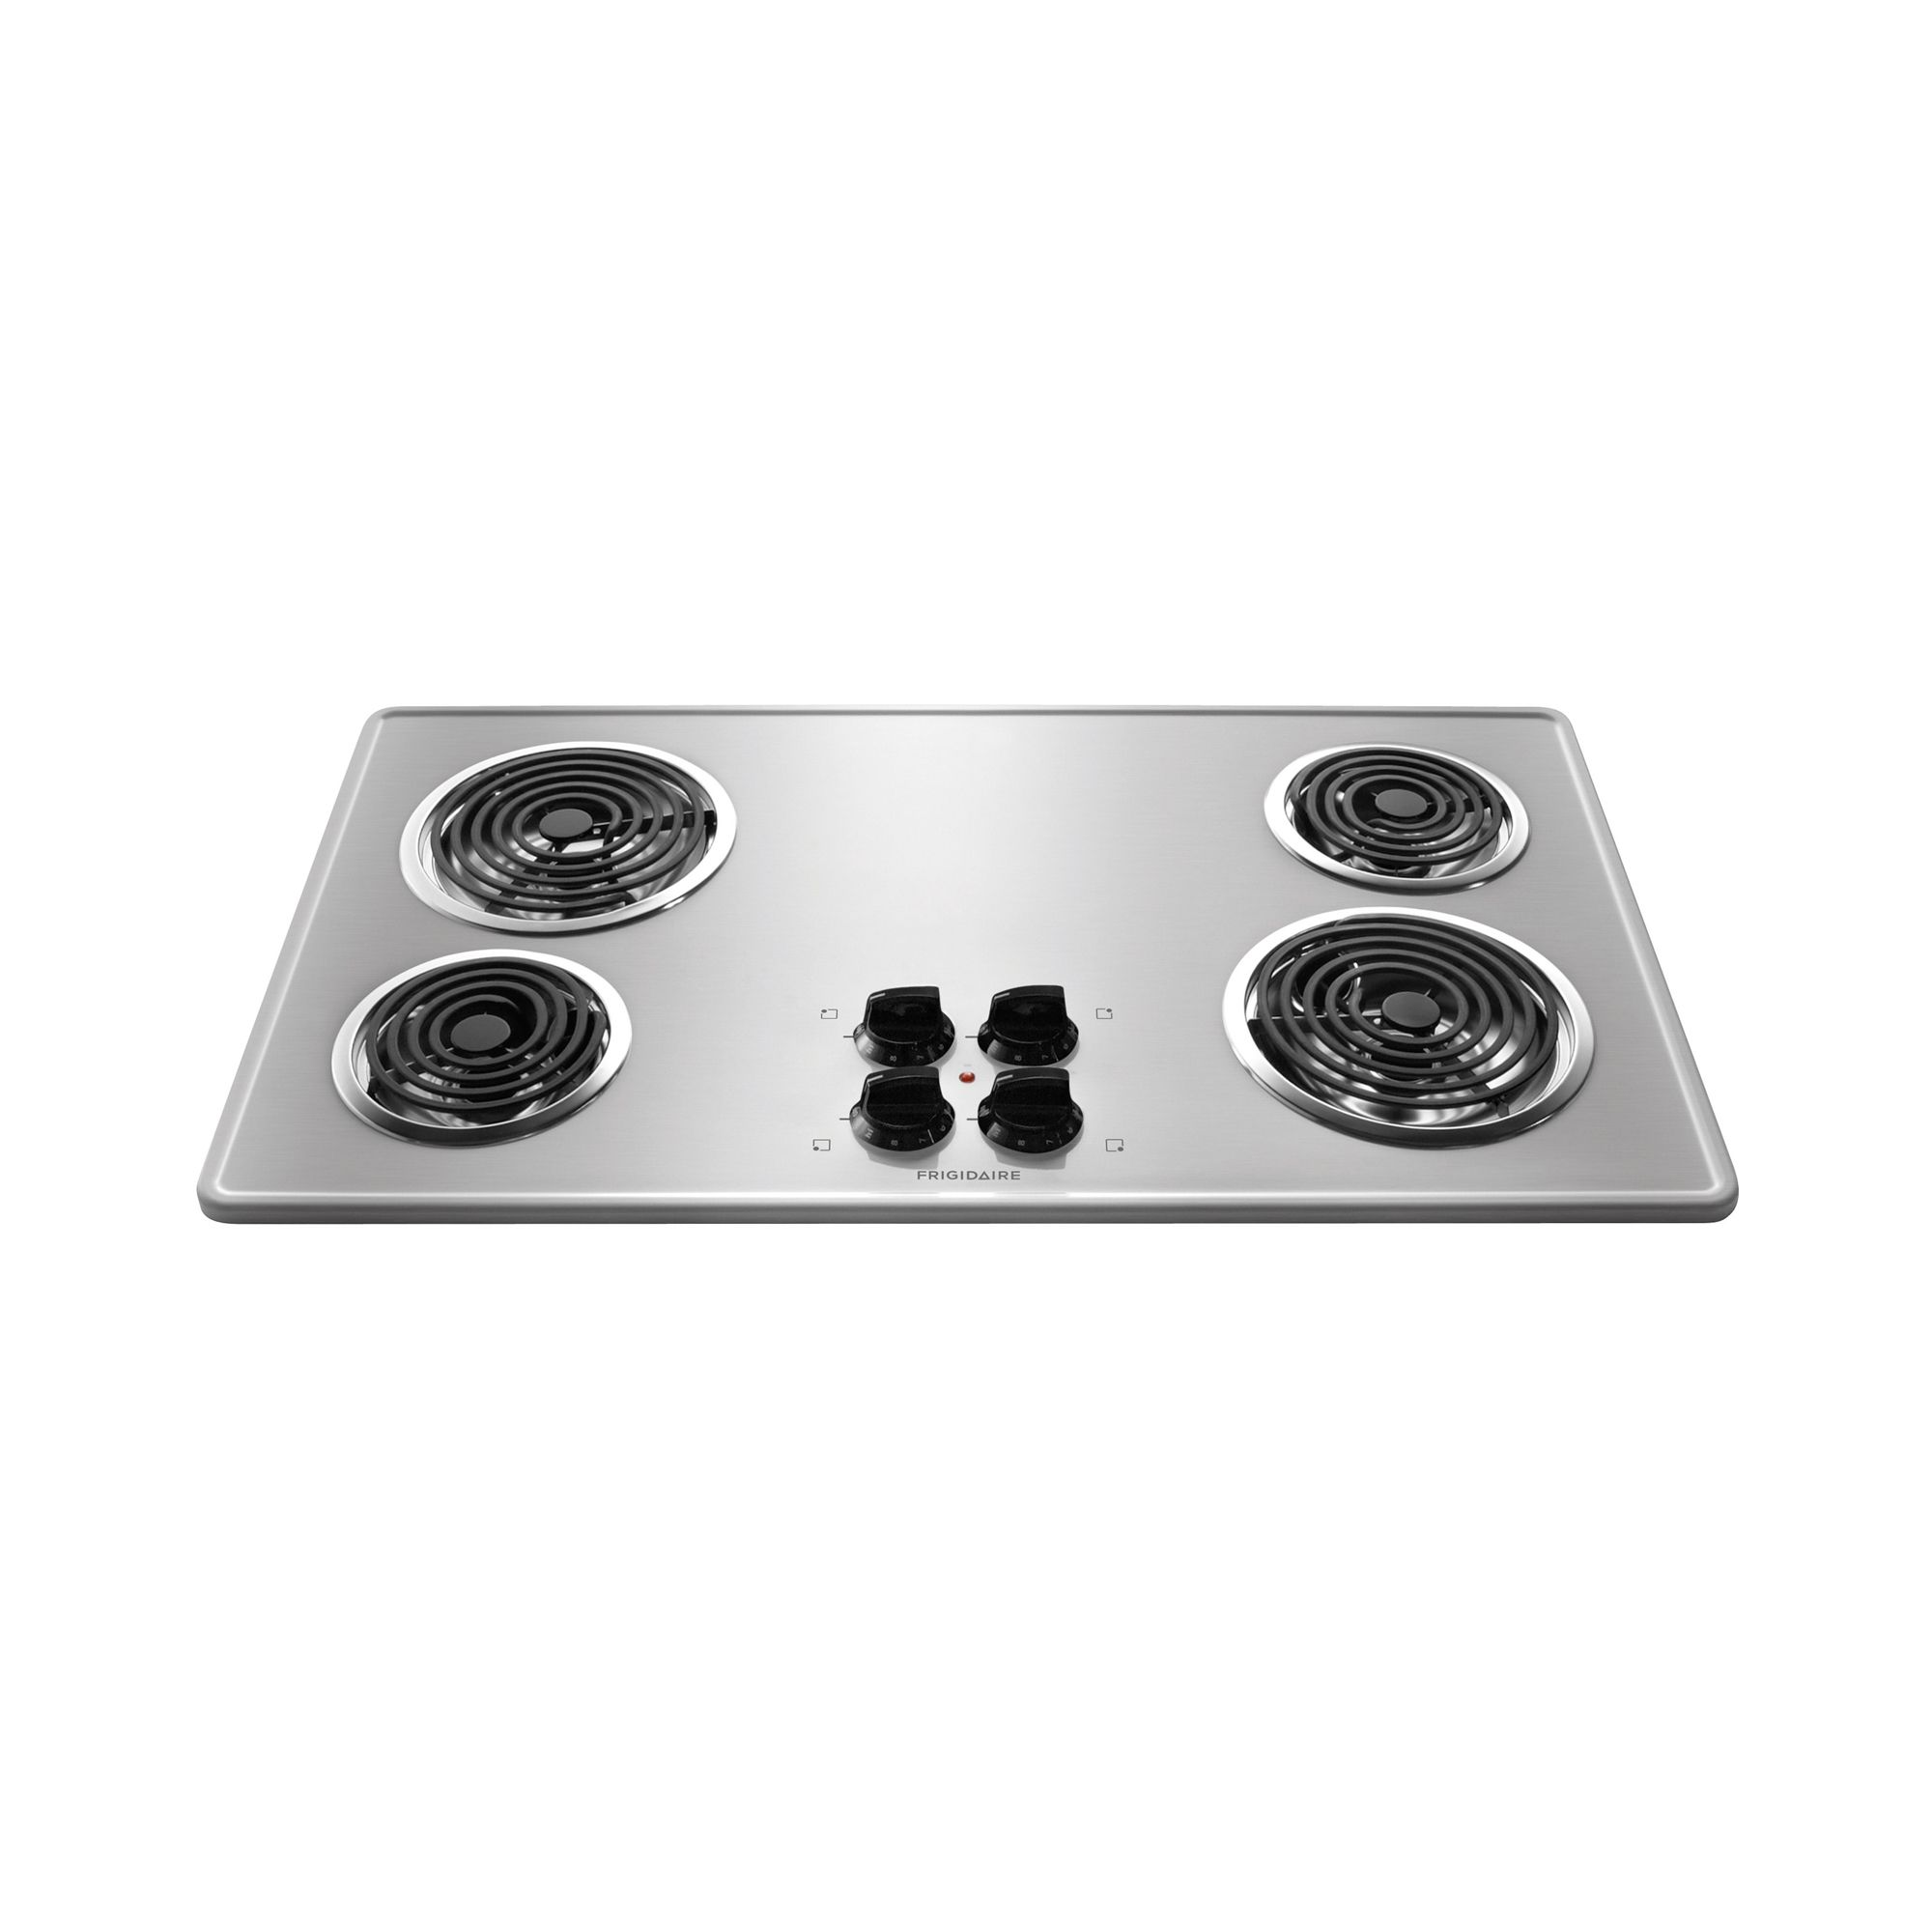 "Frigidaire 36"" Electric Cooktop with Coil Elements"